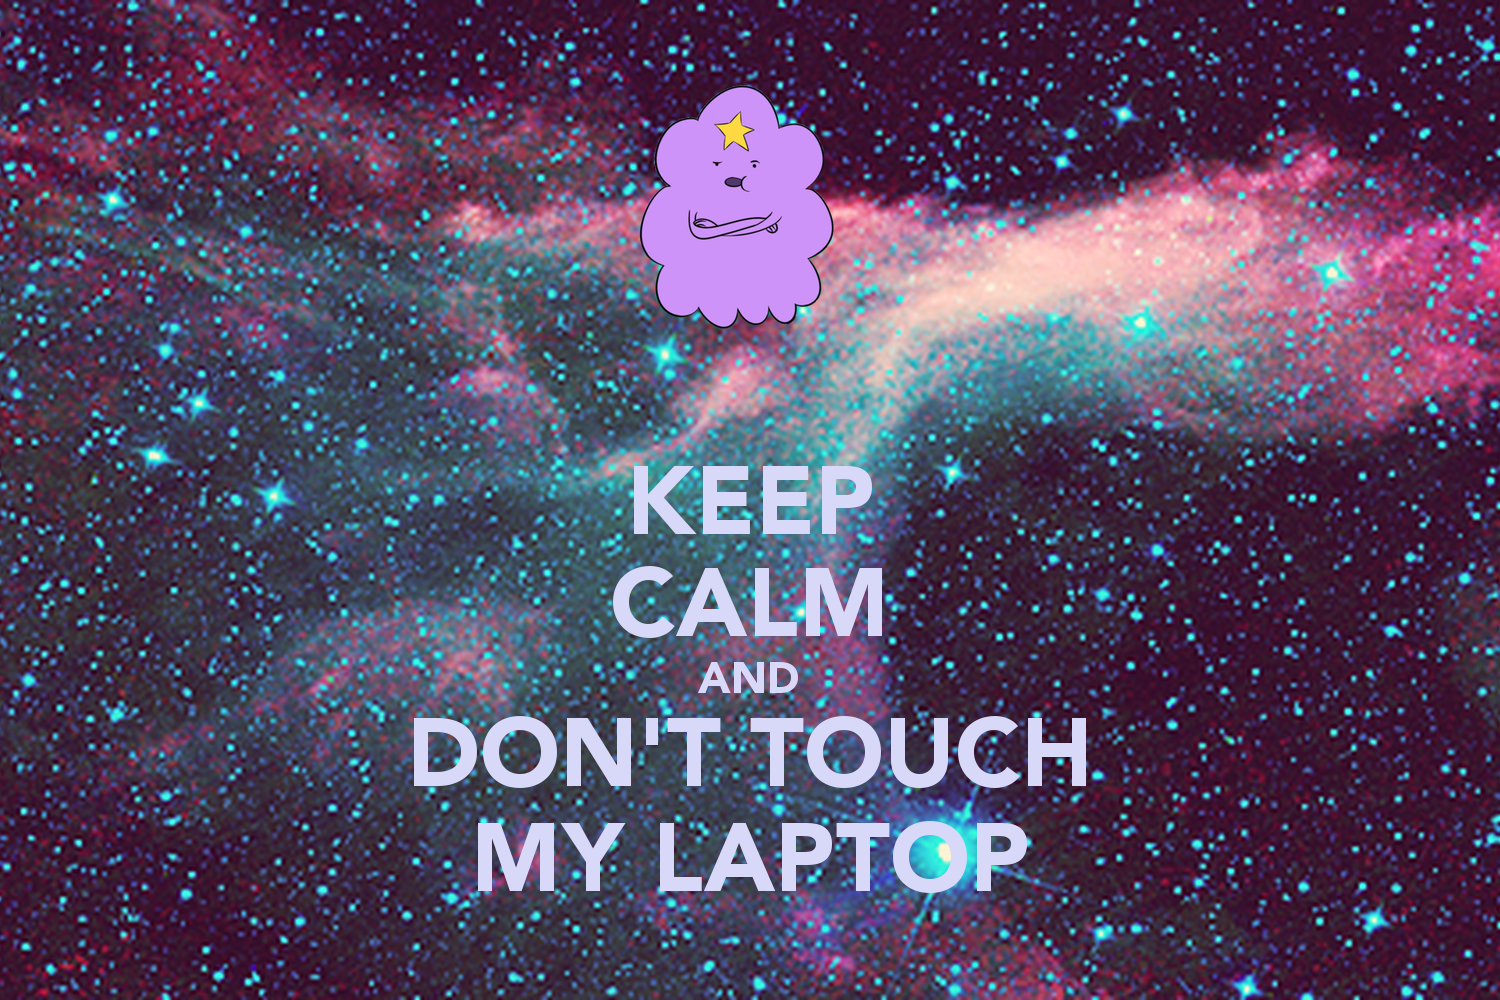 Dont Touch My Laptop Wallpaper Posted By Ethan Cunningham